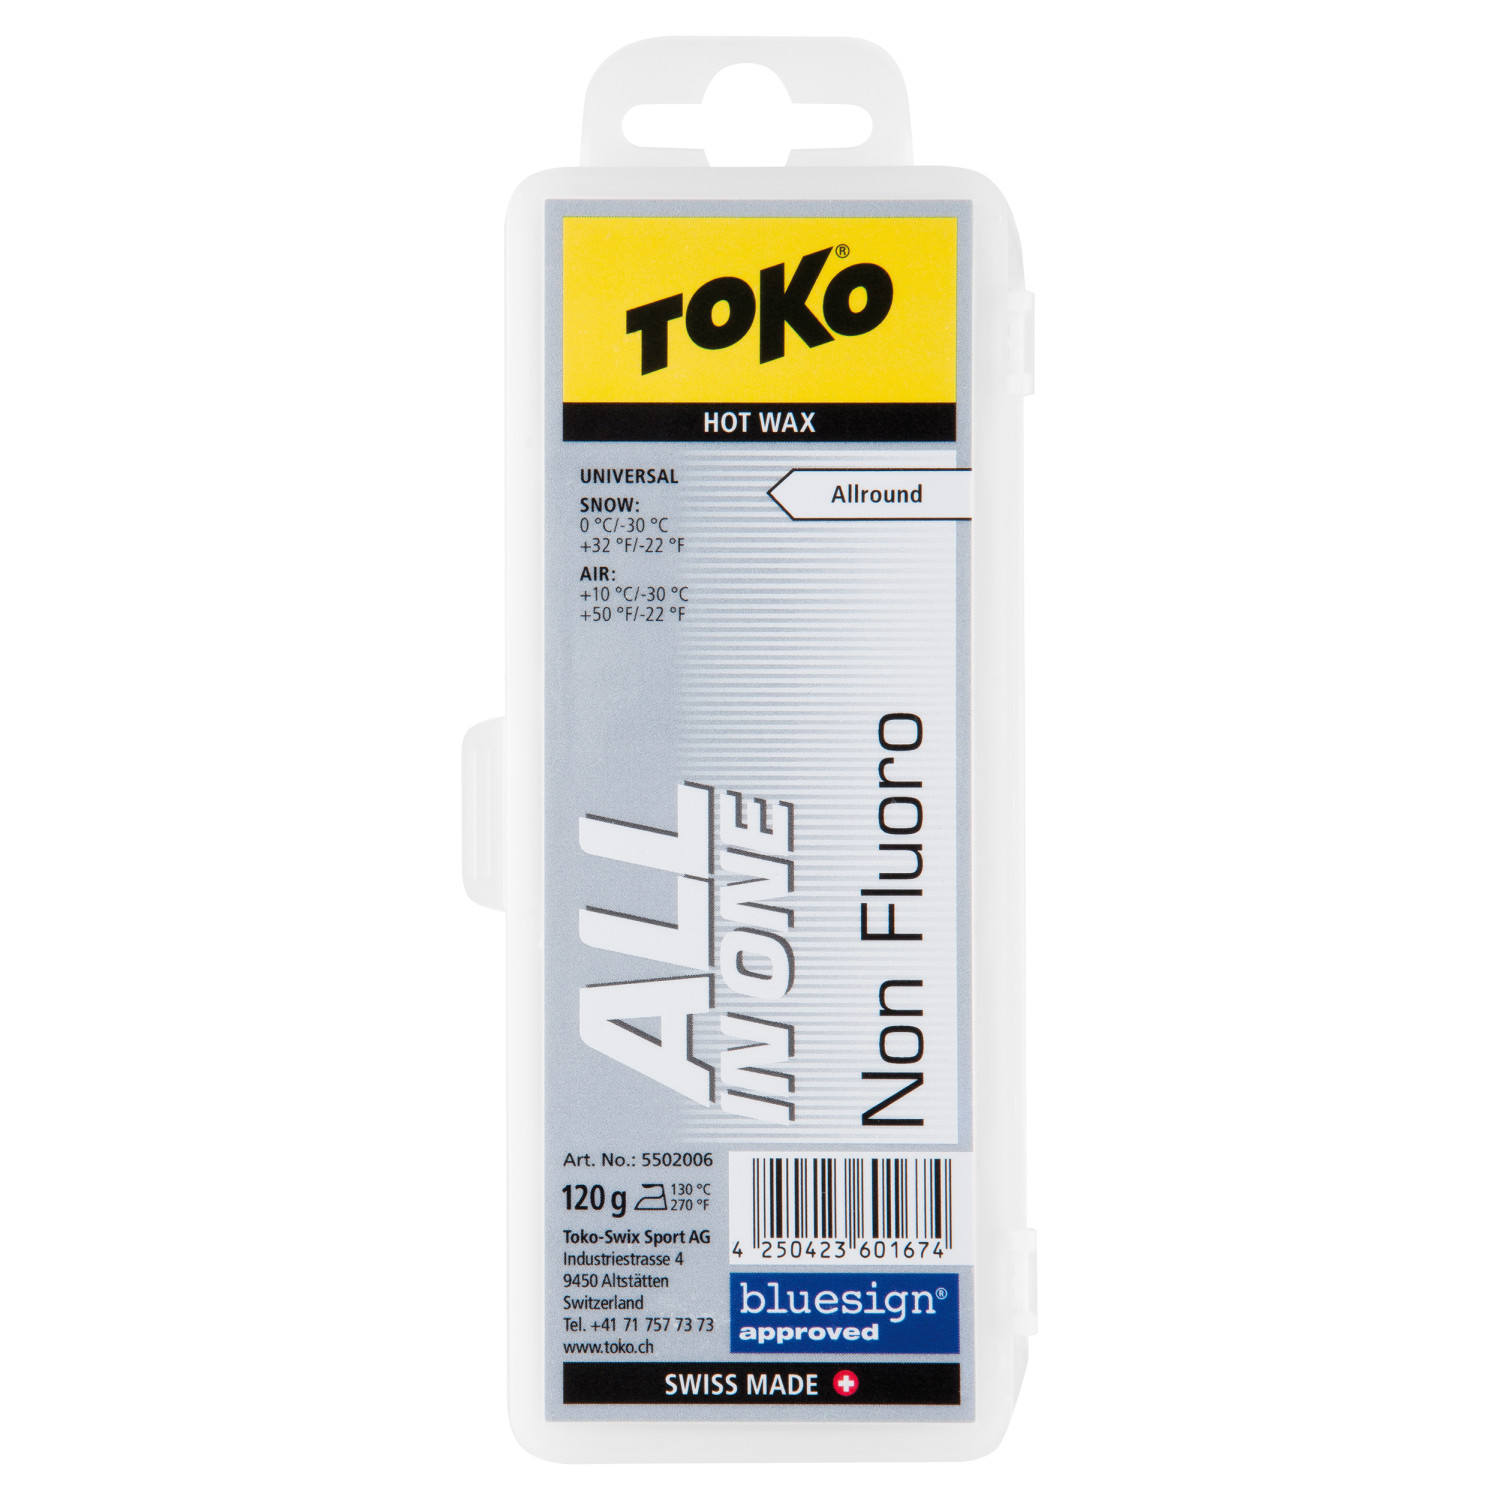 Toko All in One Hot Wax